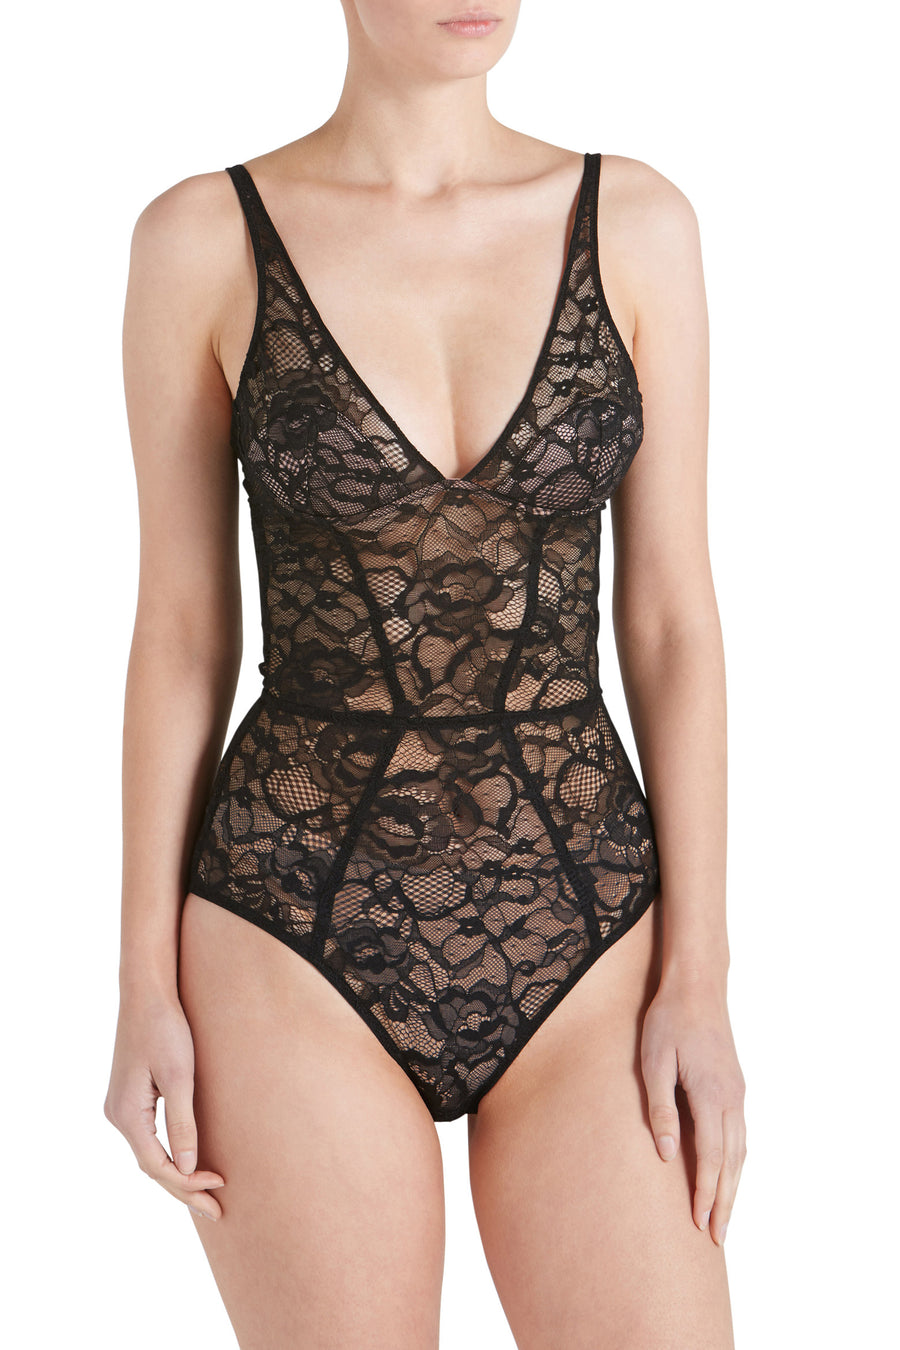 CHAT NOIR PLUNGE BDYSUIT